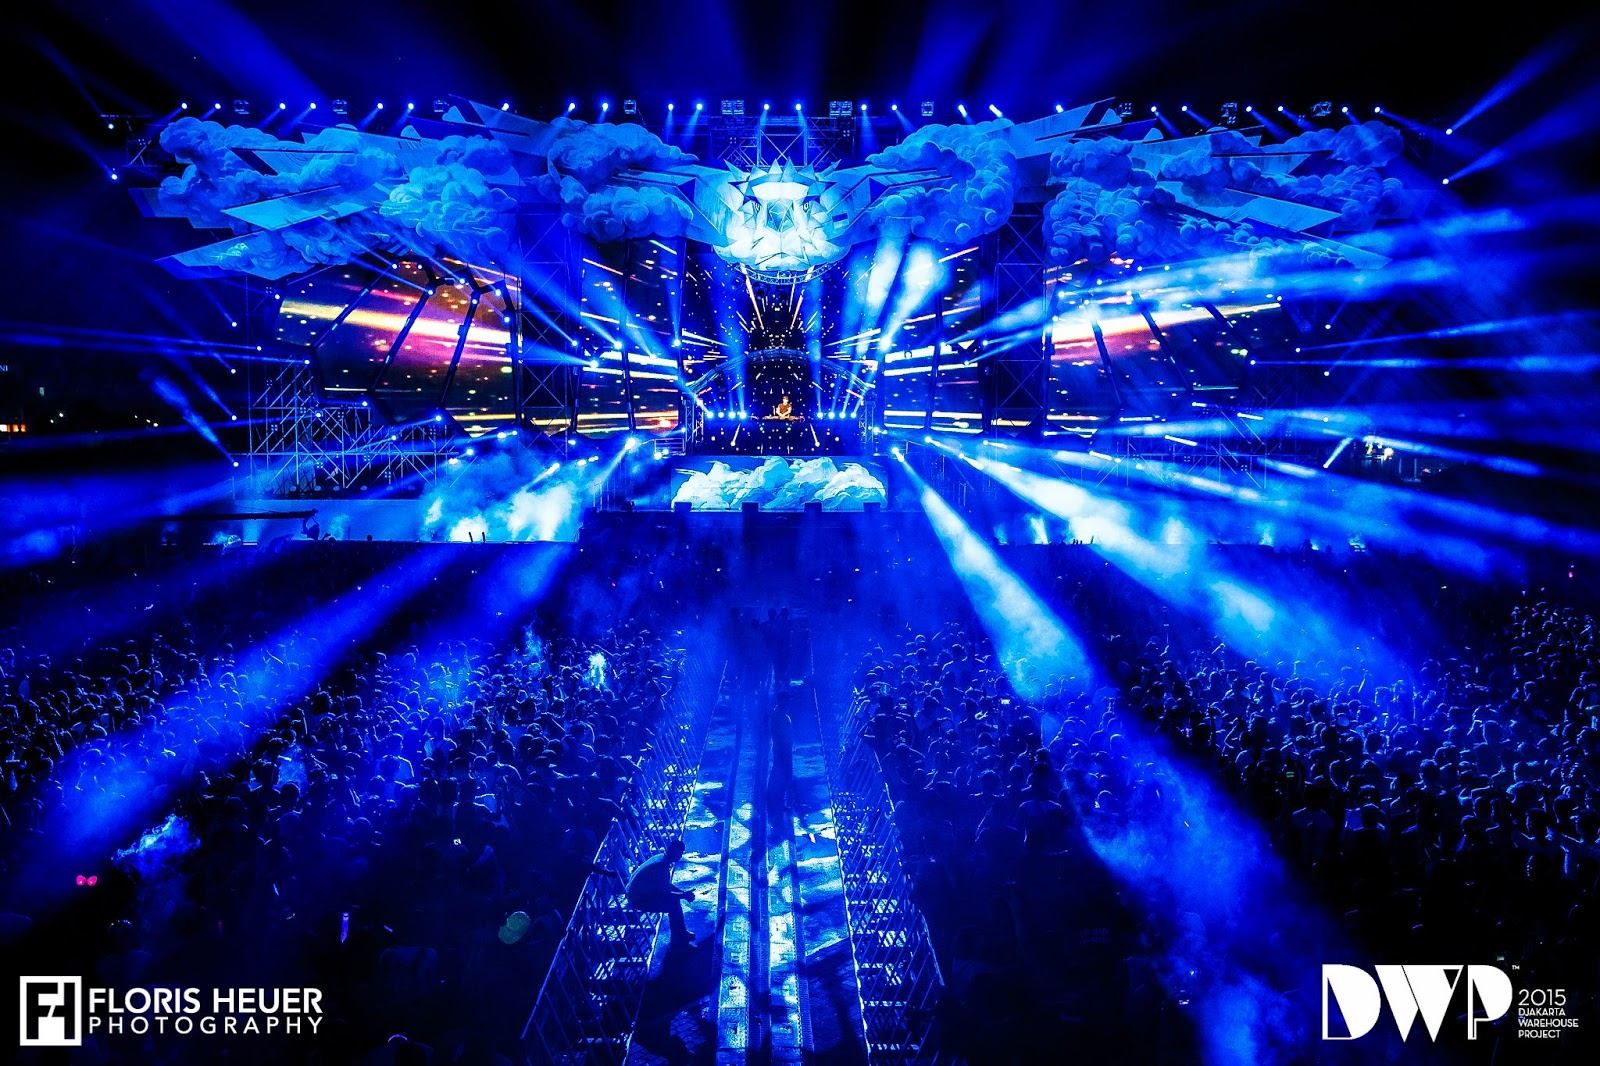 Djakarta Warehouse Project Drops A Massive Final Lineup Edm Tiket Dwp 2017 2 Day Pass Around 30 Additional Regional Support Acts Set To Join The Topguns Across Three Spectacular Stages Is Take Place From